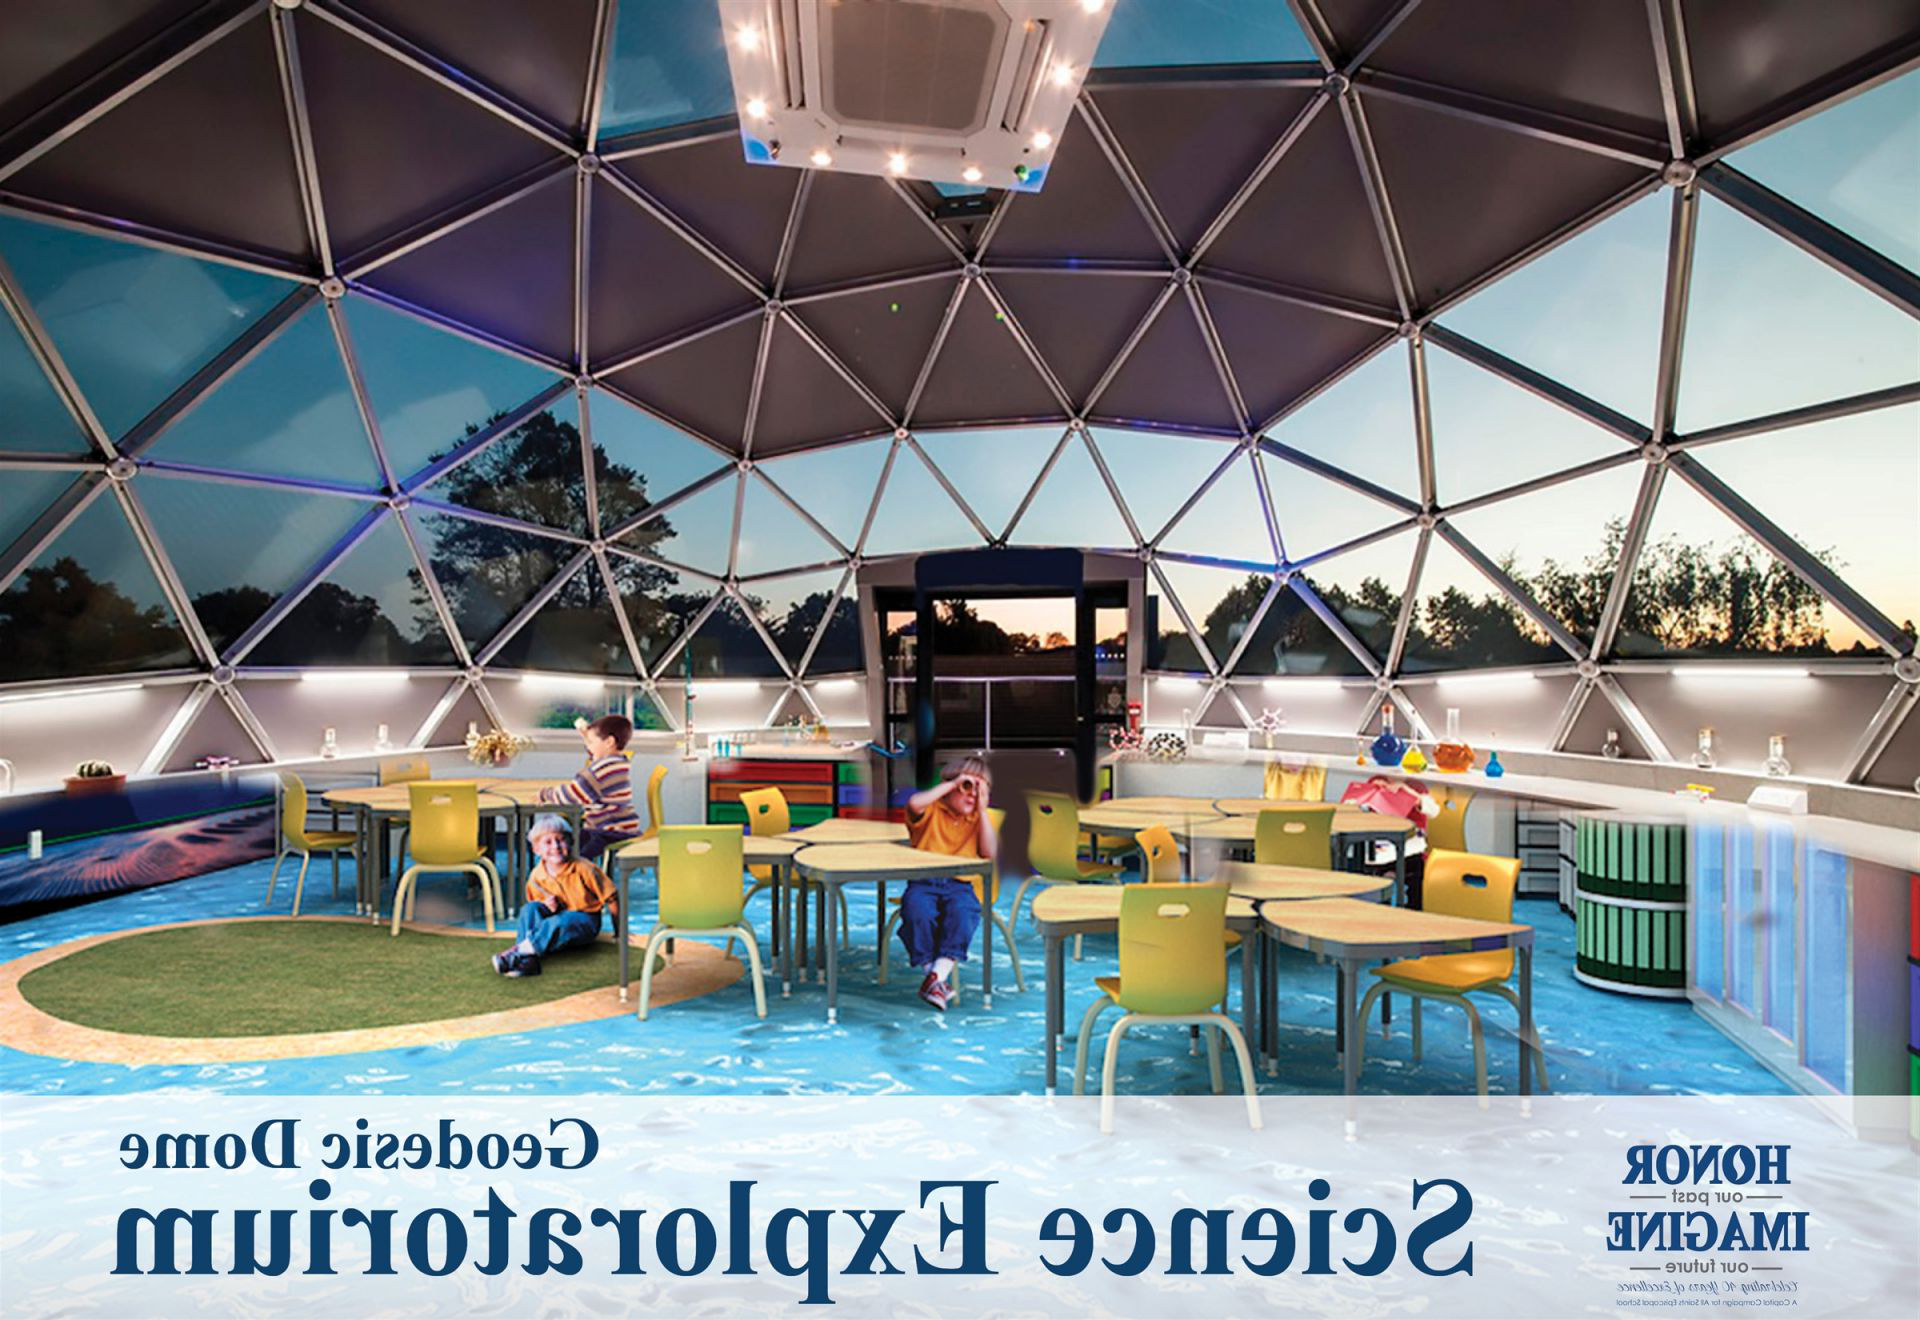 In Summer 2019, we will build a spectacular geodesic dome 科学探索博物馆.